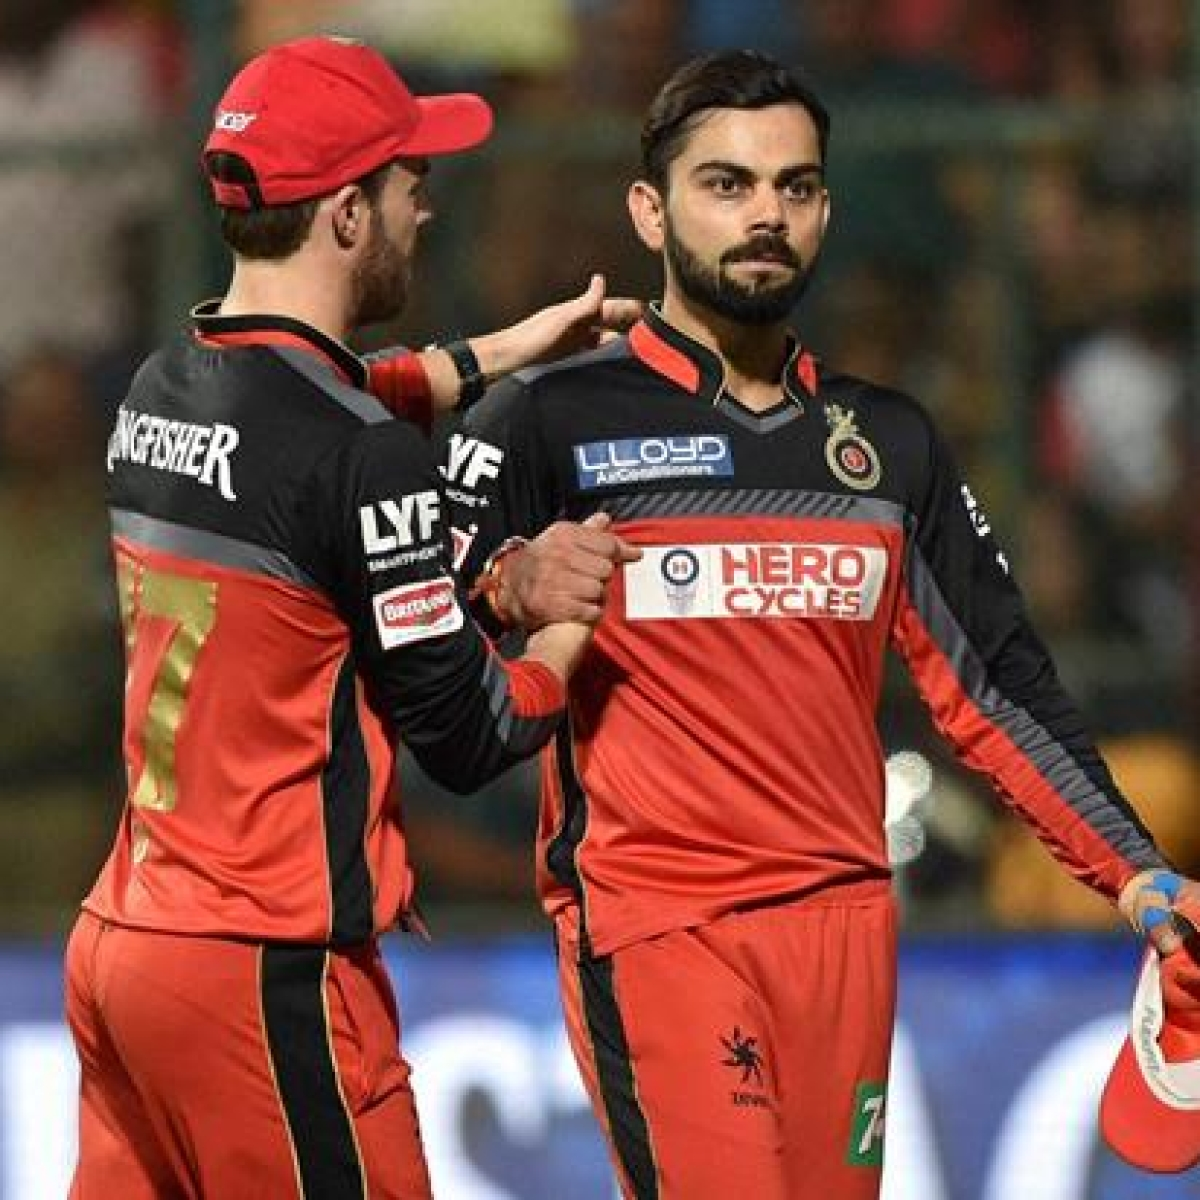 #CancelIPL trends on Twitter after KKR players, CSK bowling coach L Balaji test positive for COVID-19